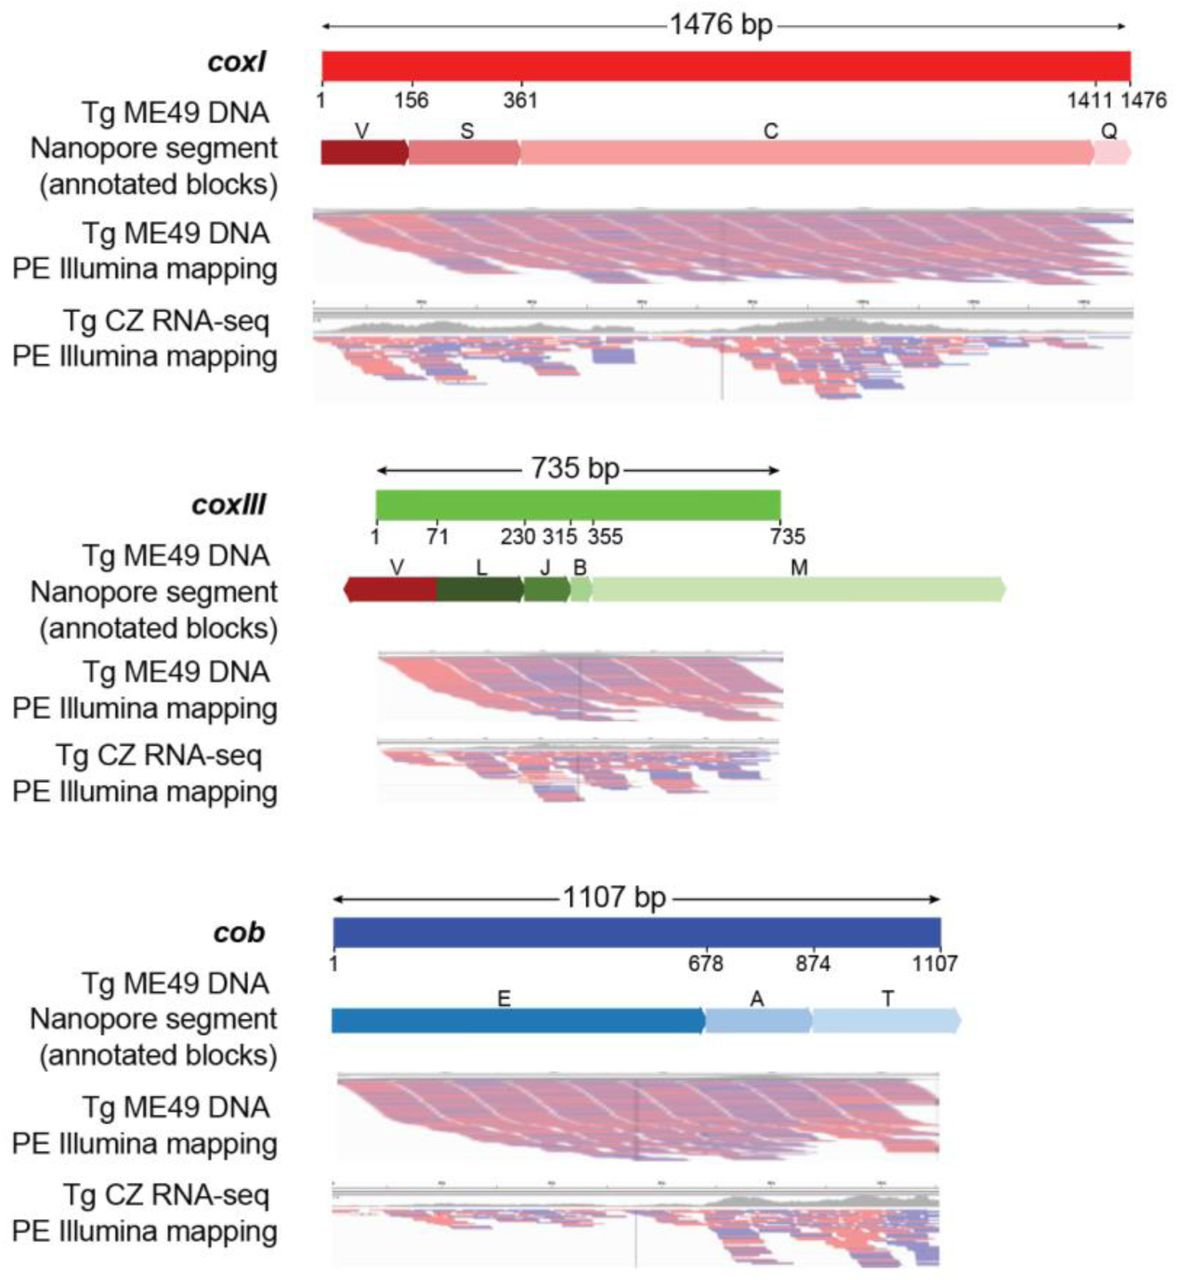 Full-length protein-encoding genes in the T. gondii mt genome are supported. Segments of a Nanopore read that can encode a full-length cytochrome gene are annotated with their sequence block name and shown below the schematic of each gene. Numbers below each gene schematic represent nucleotide start/stop positions of a sequence block on the gene. All blocks are in the forward orientation except block V in coxIII . All blocks shown participate fully in creation of the cytochrome sequence except block V where only a part of coxIII is used, and sequence blocks M and T where only a portion of the block contributes to encoding a cytochrome gene. MtDNA-specific paired-end Illumina DNA (SRR9200762) and RNA-seq (SRR6493545) reads were independently mapped to each of the cytochrome gene sequences and visualized using IGV. Red and blue lines below each gene indicate the mapped Illumina paired-ends. Both ends were required to map.